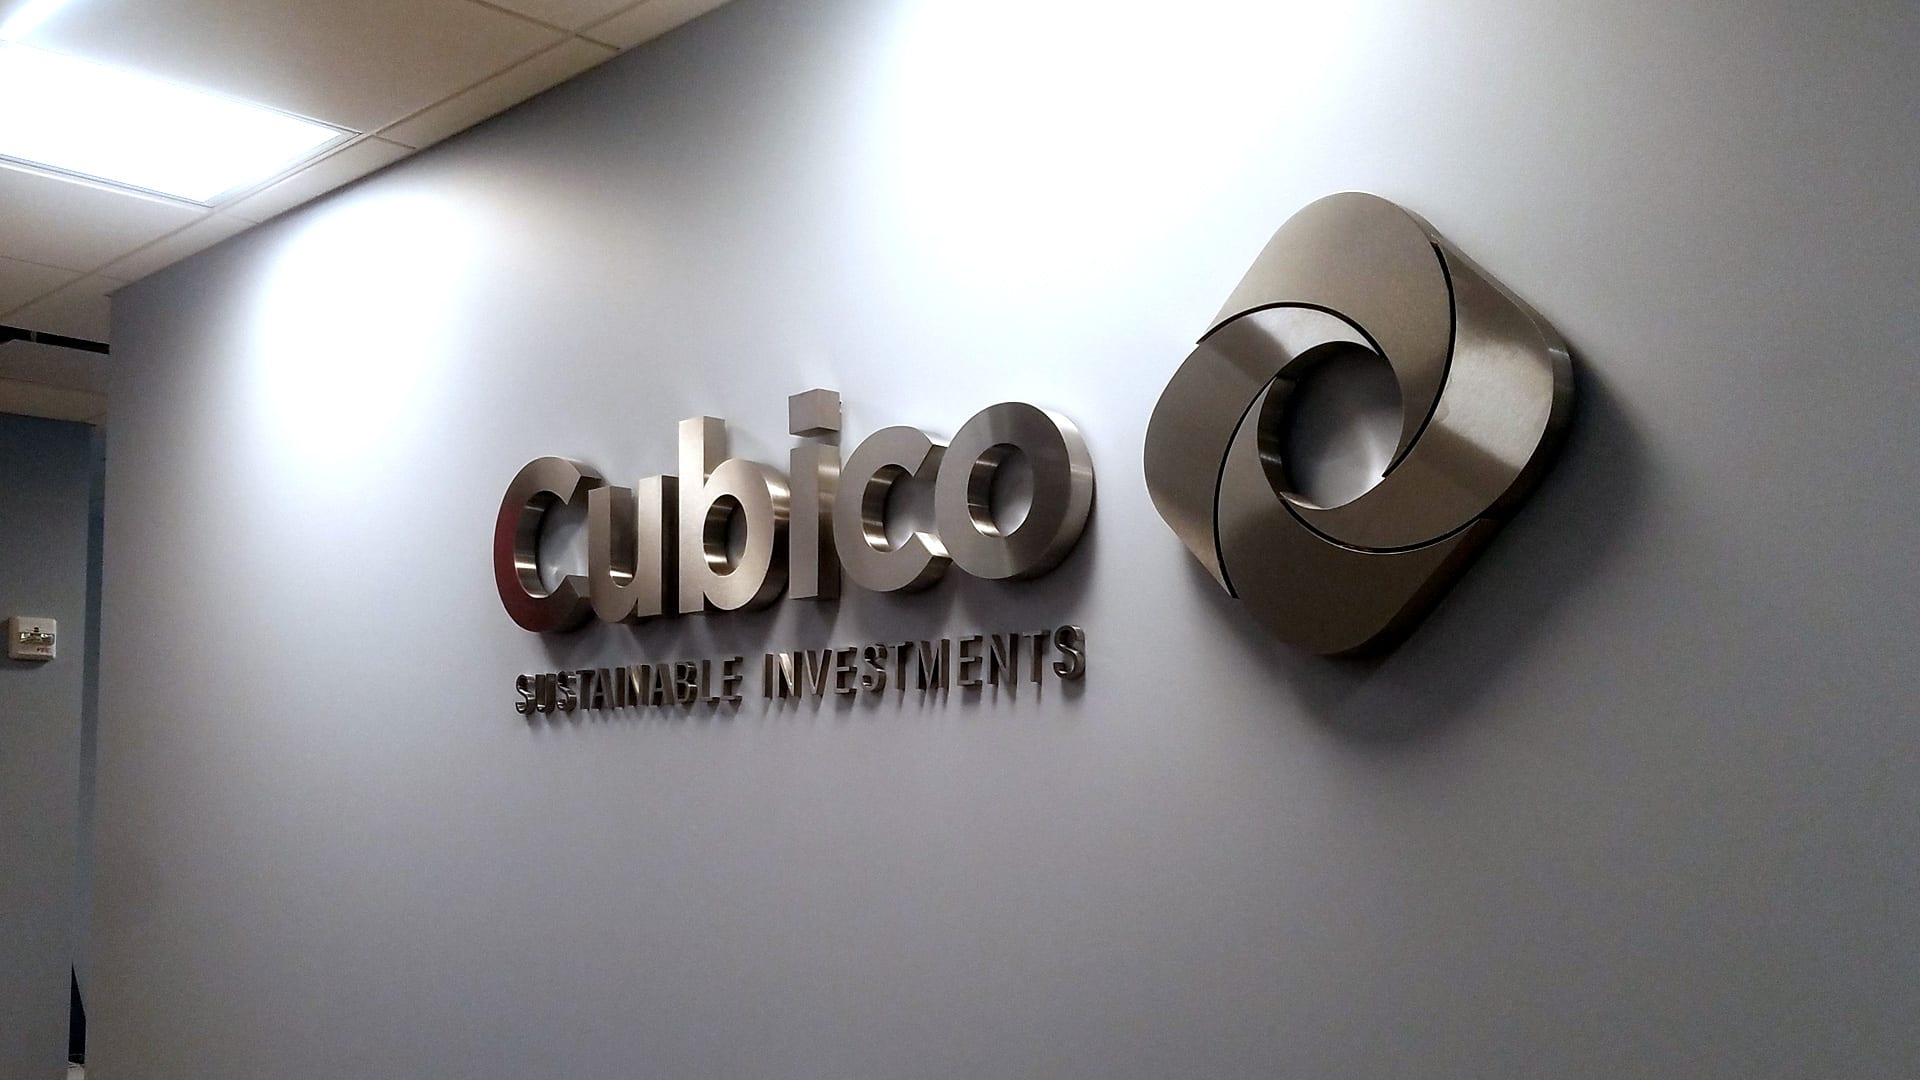 Cubico-Stainless-Letters